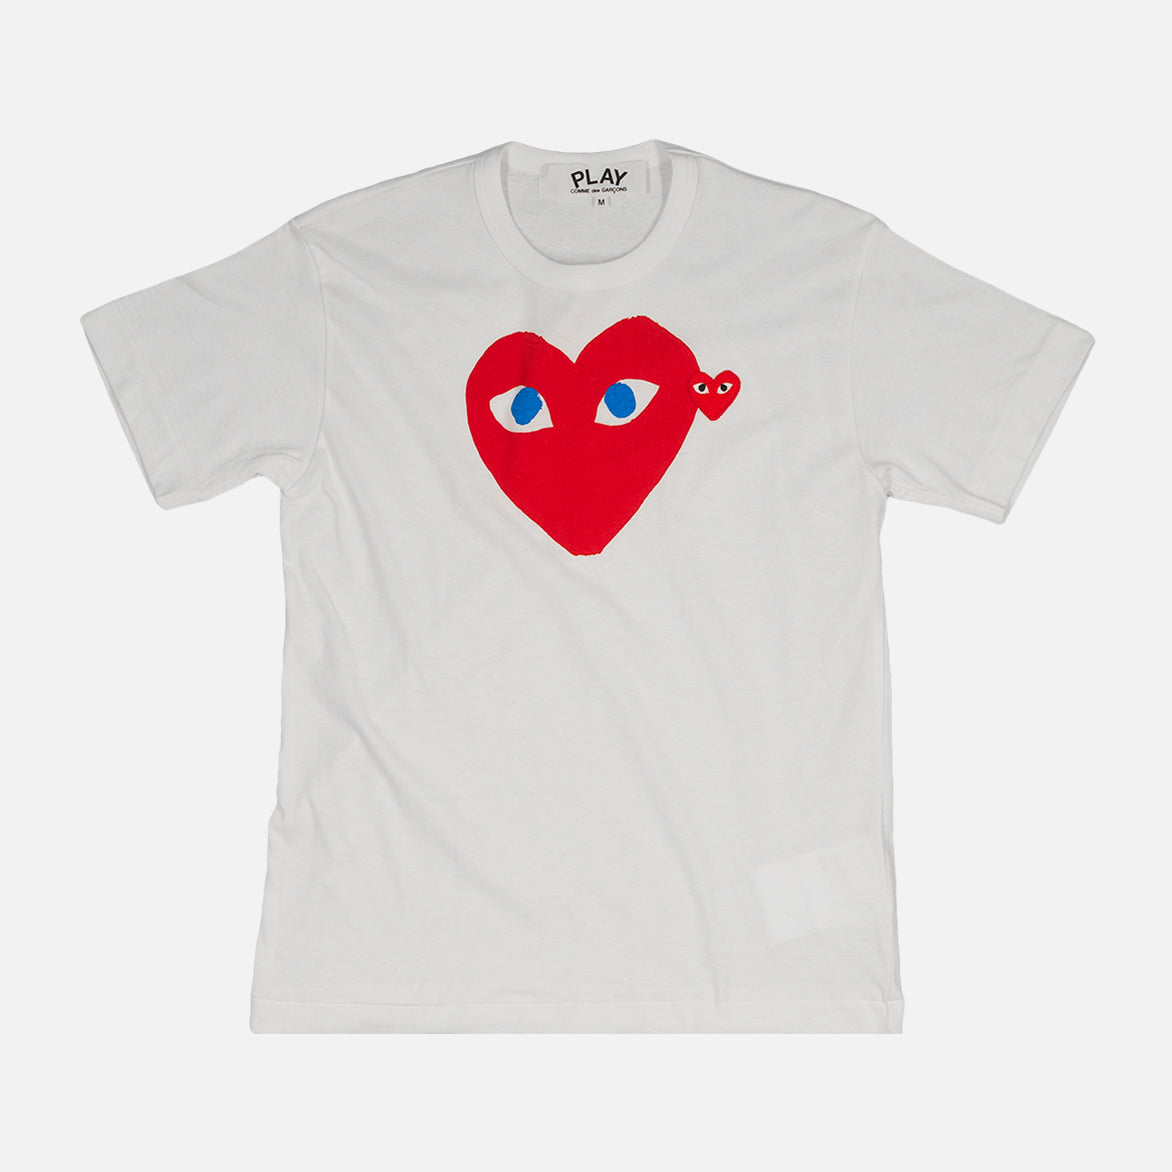 PLAY DOUBLE HEART LOGO TEE - WHITE / RED / BLUE